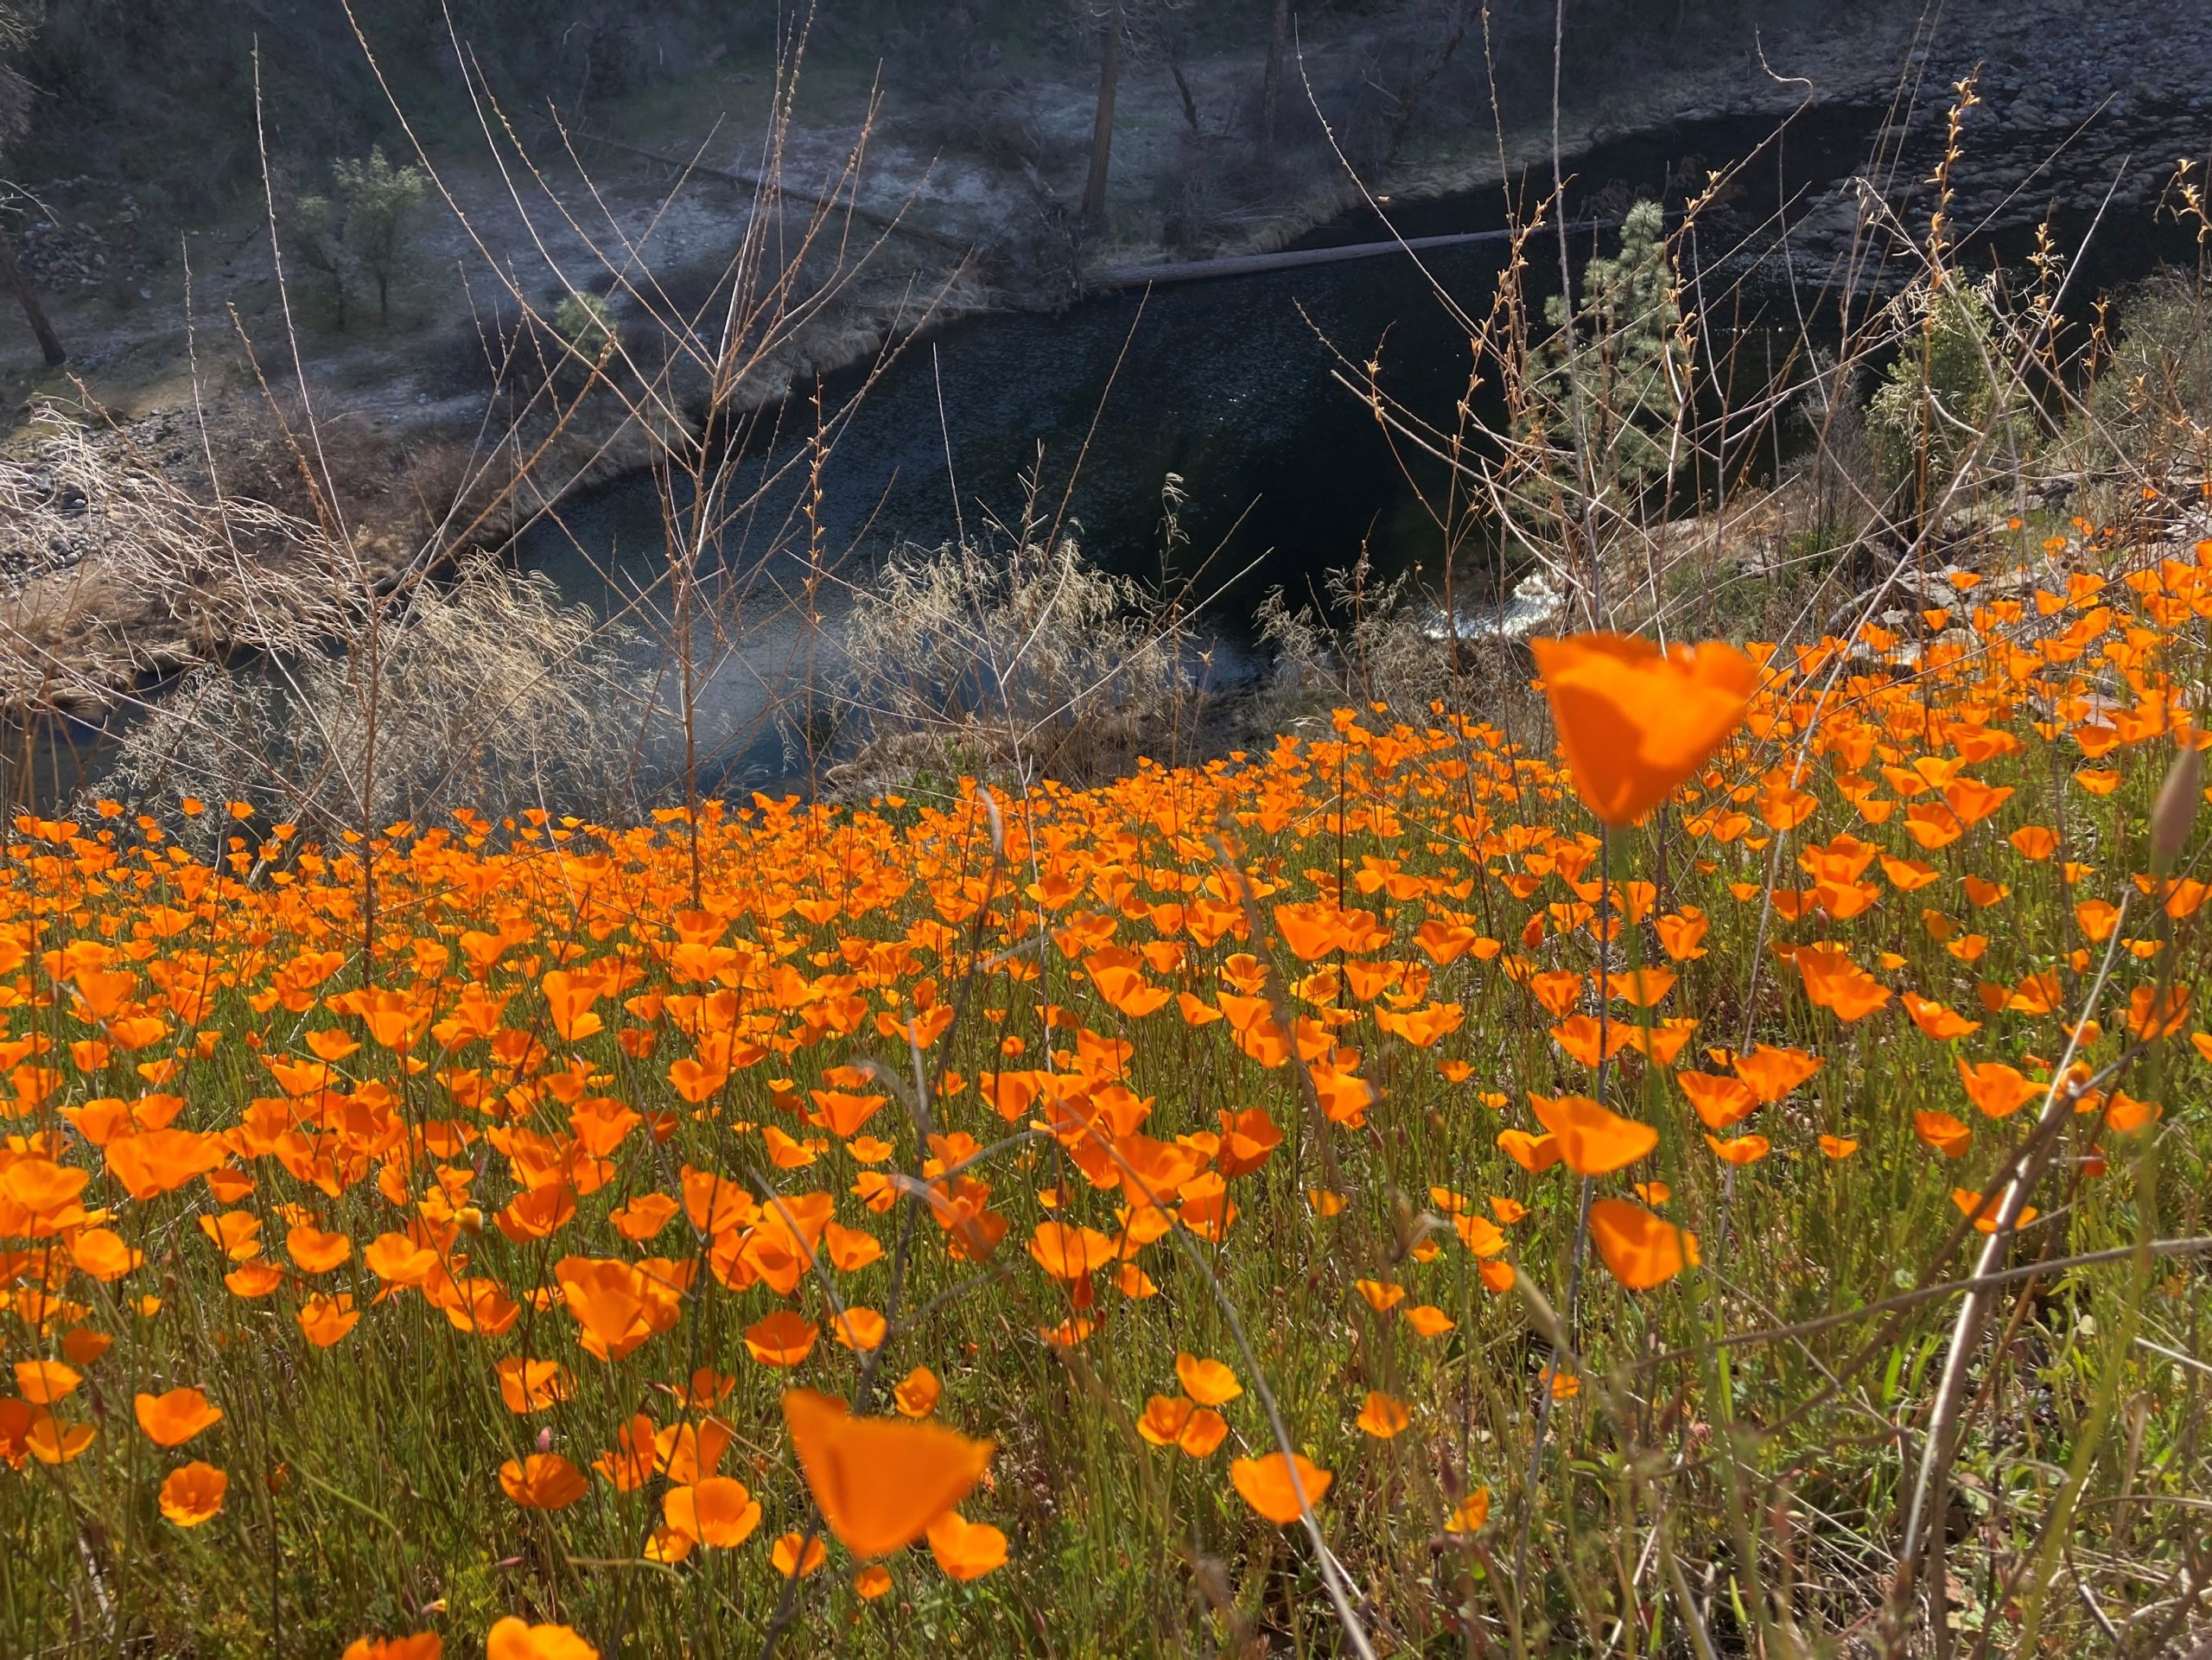 A grassy slope above the Merced River covered in orange poppies.